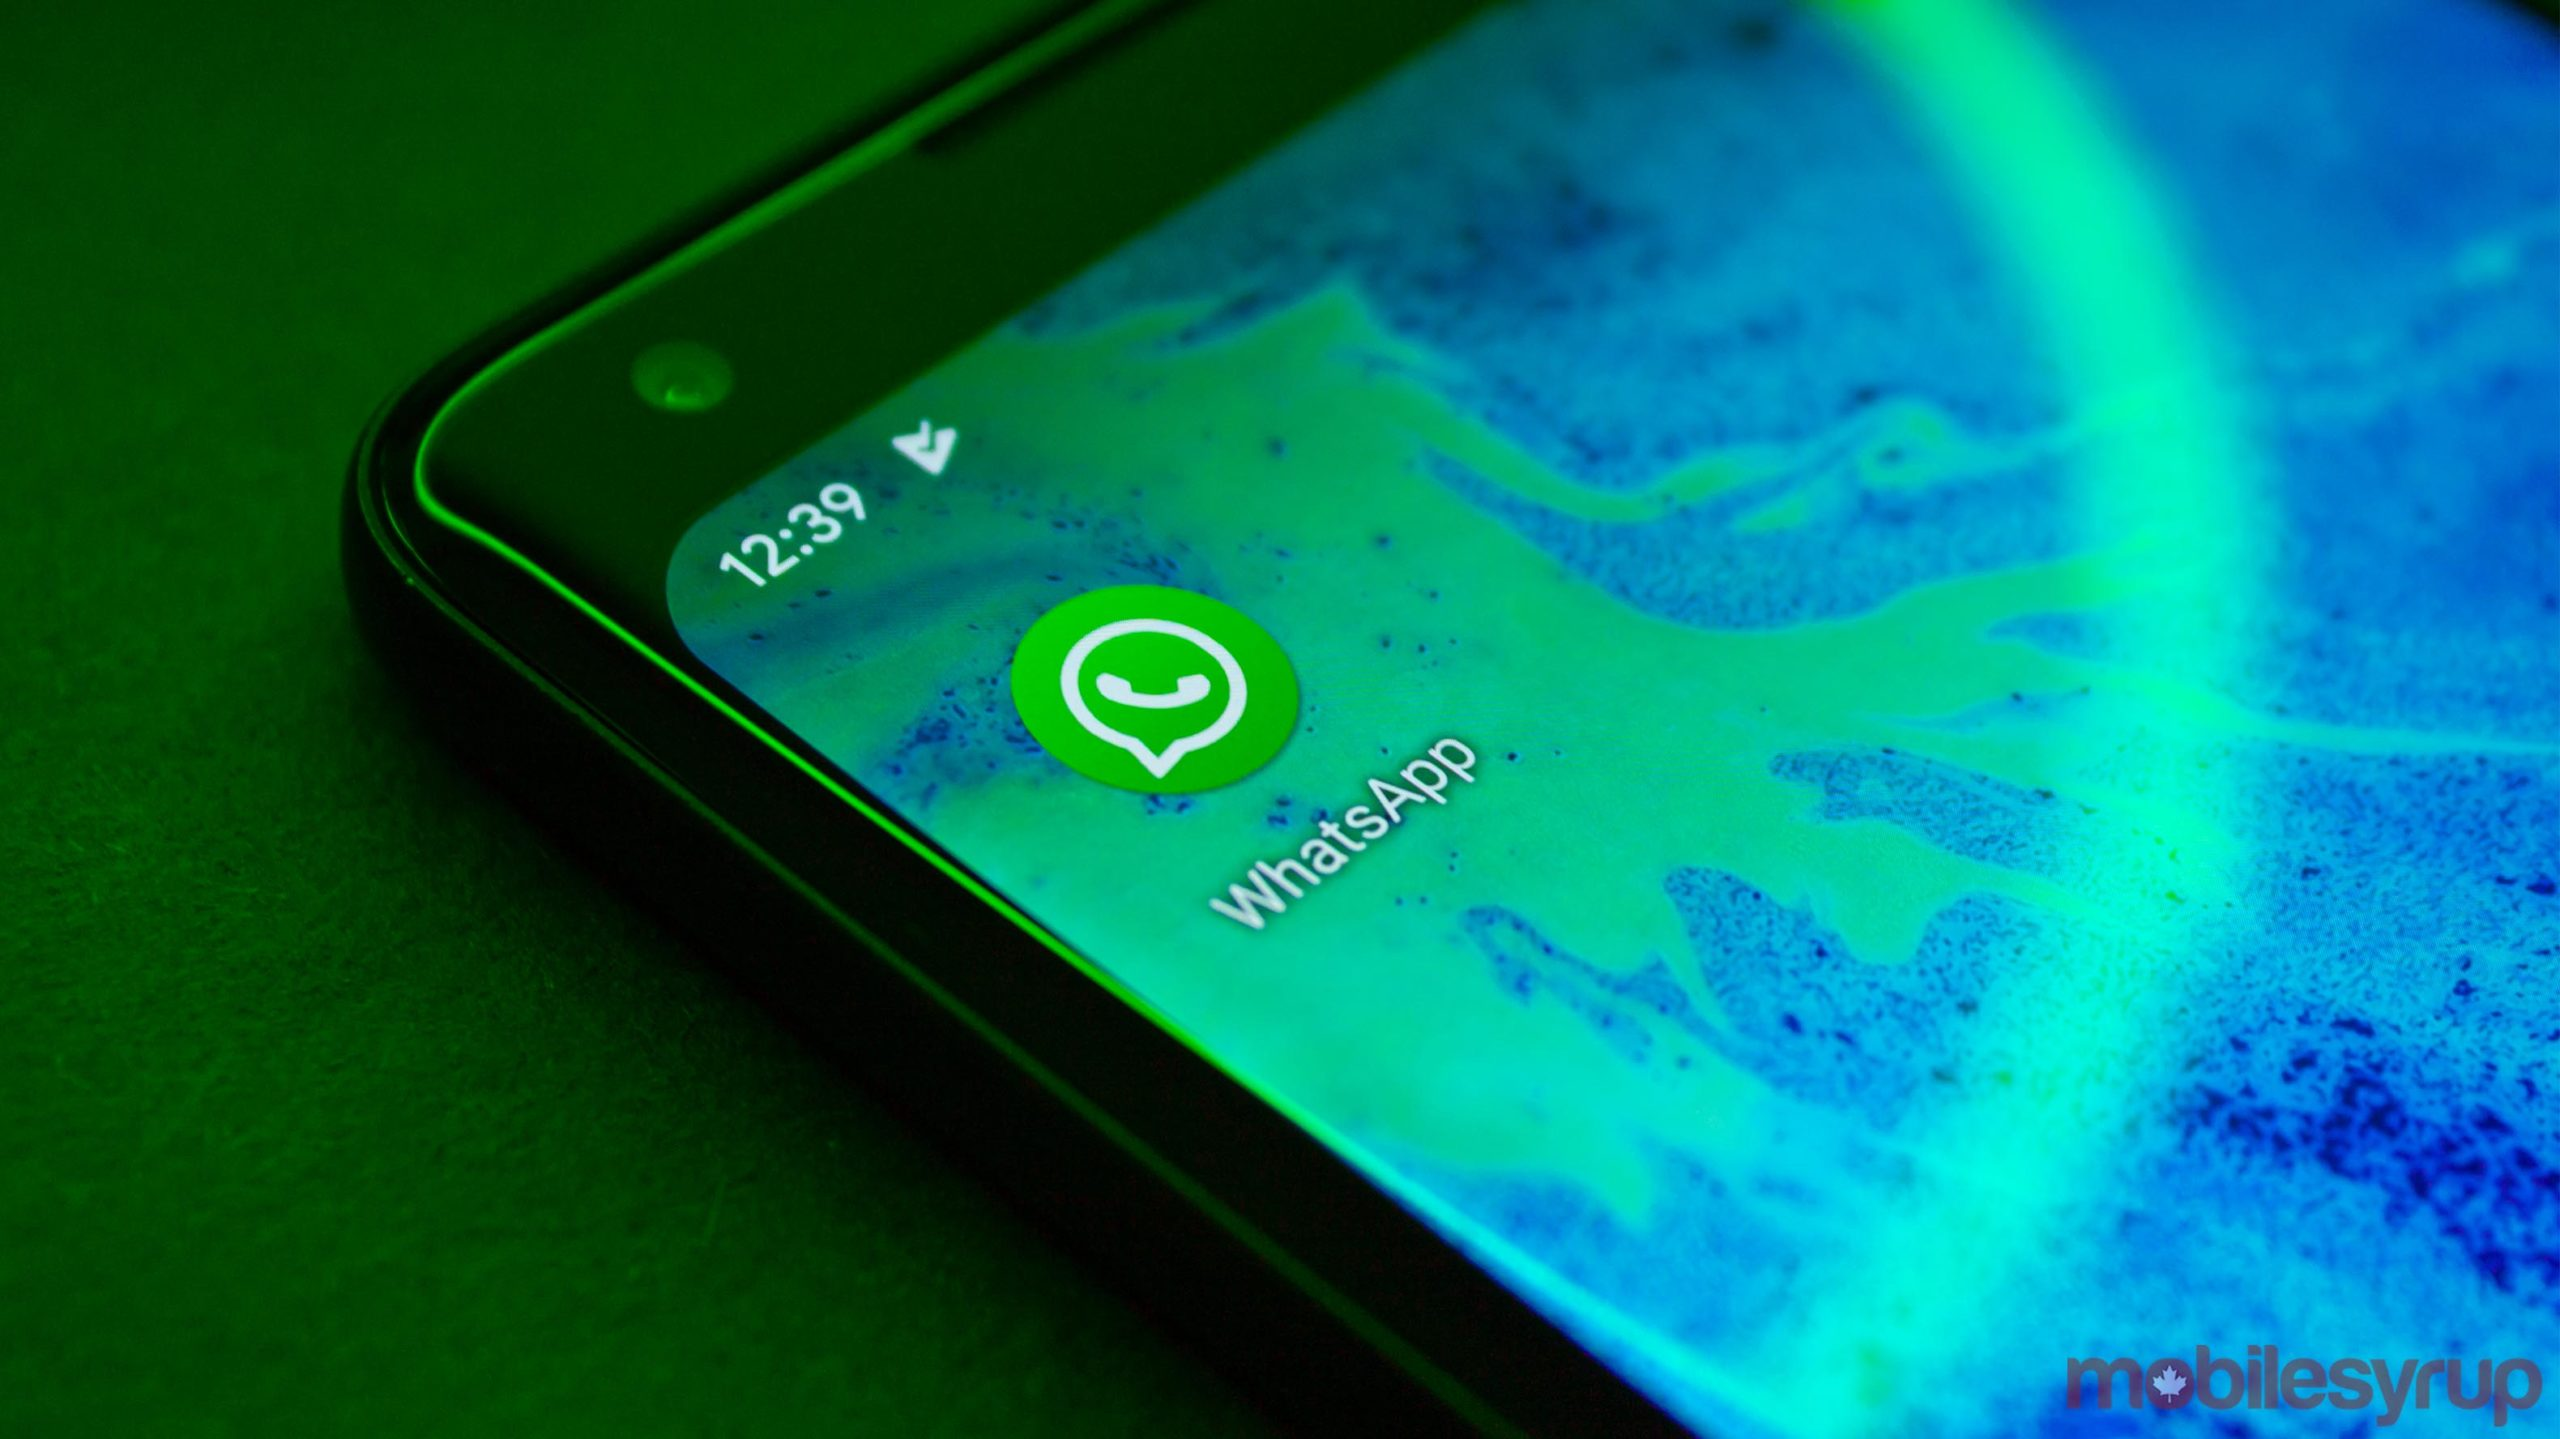 Facebook abandons plans to bring ads to WhatsApp for now